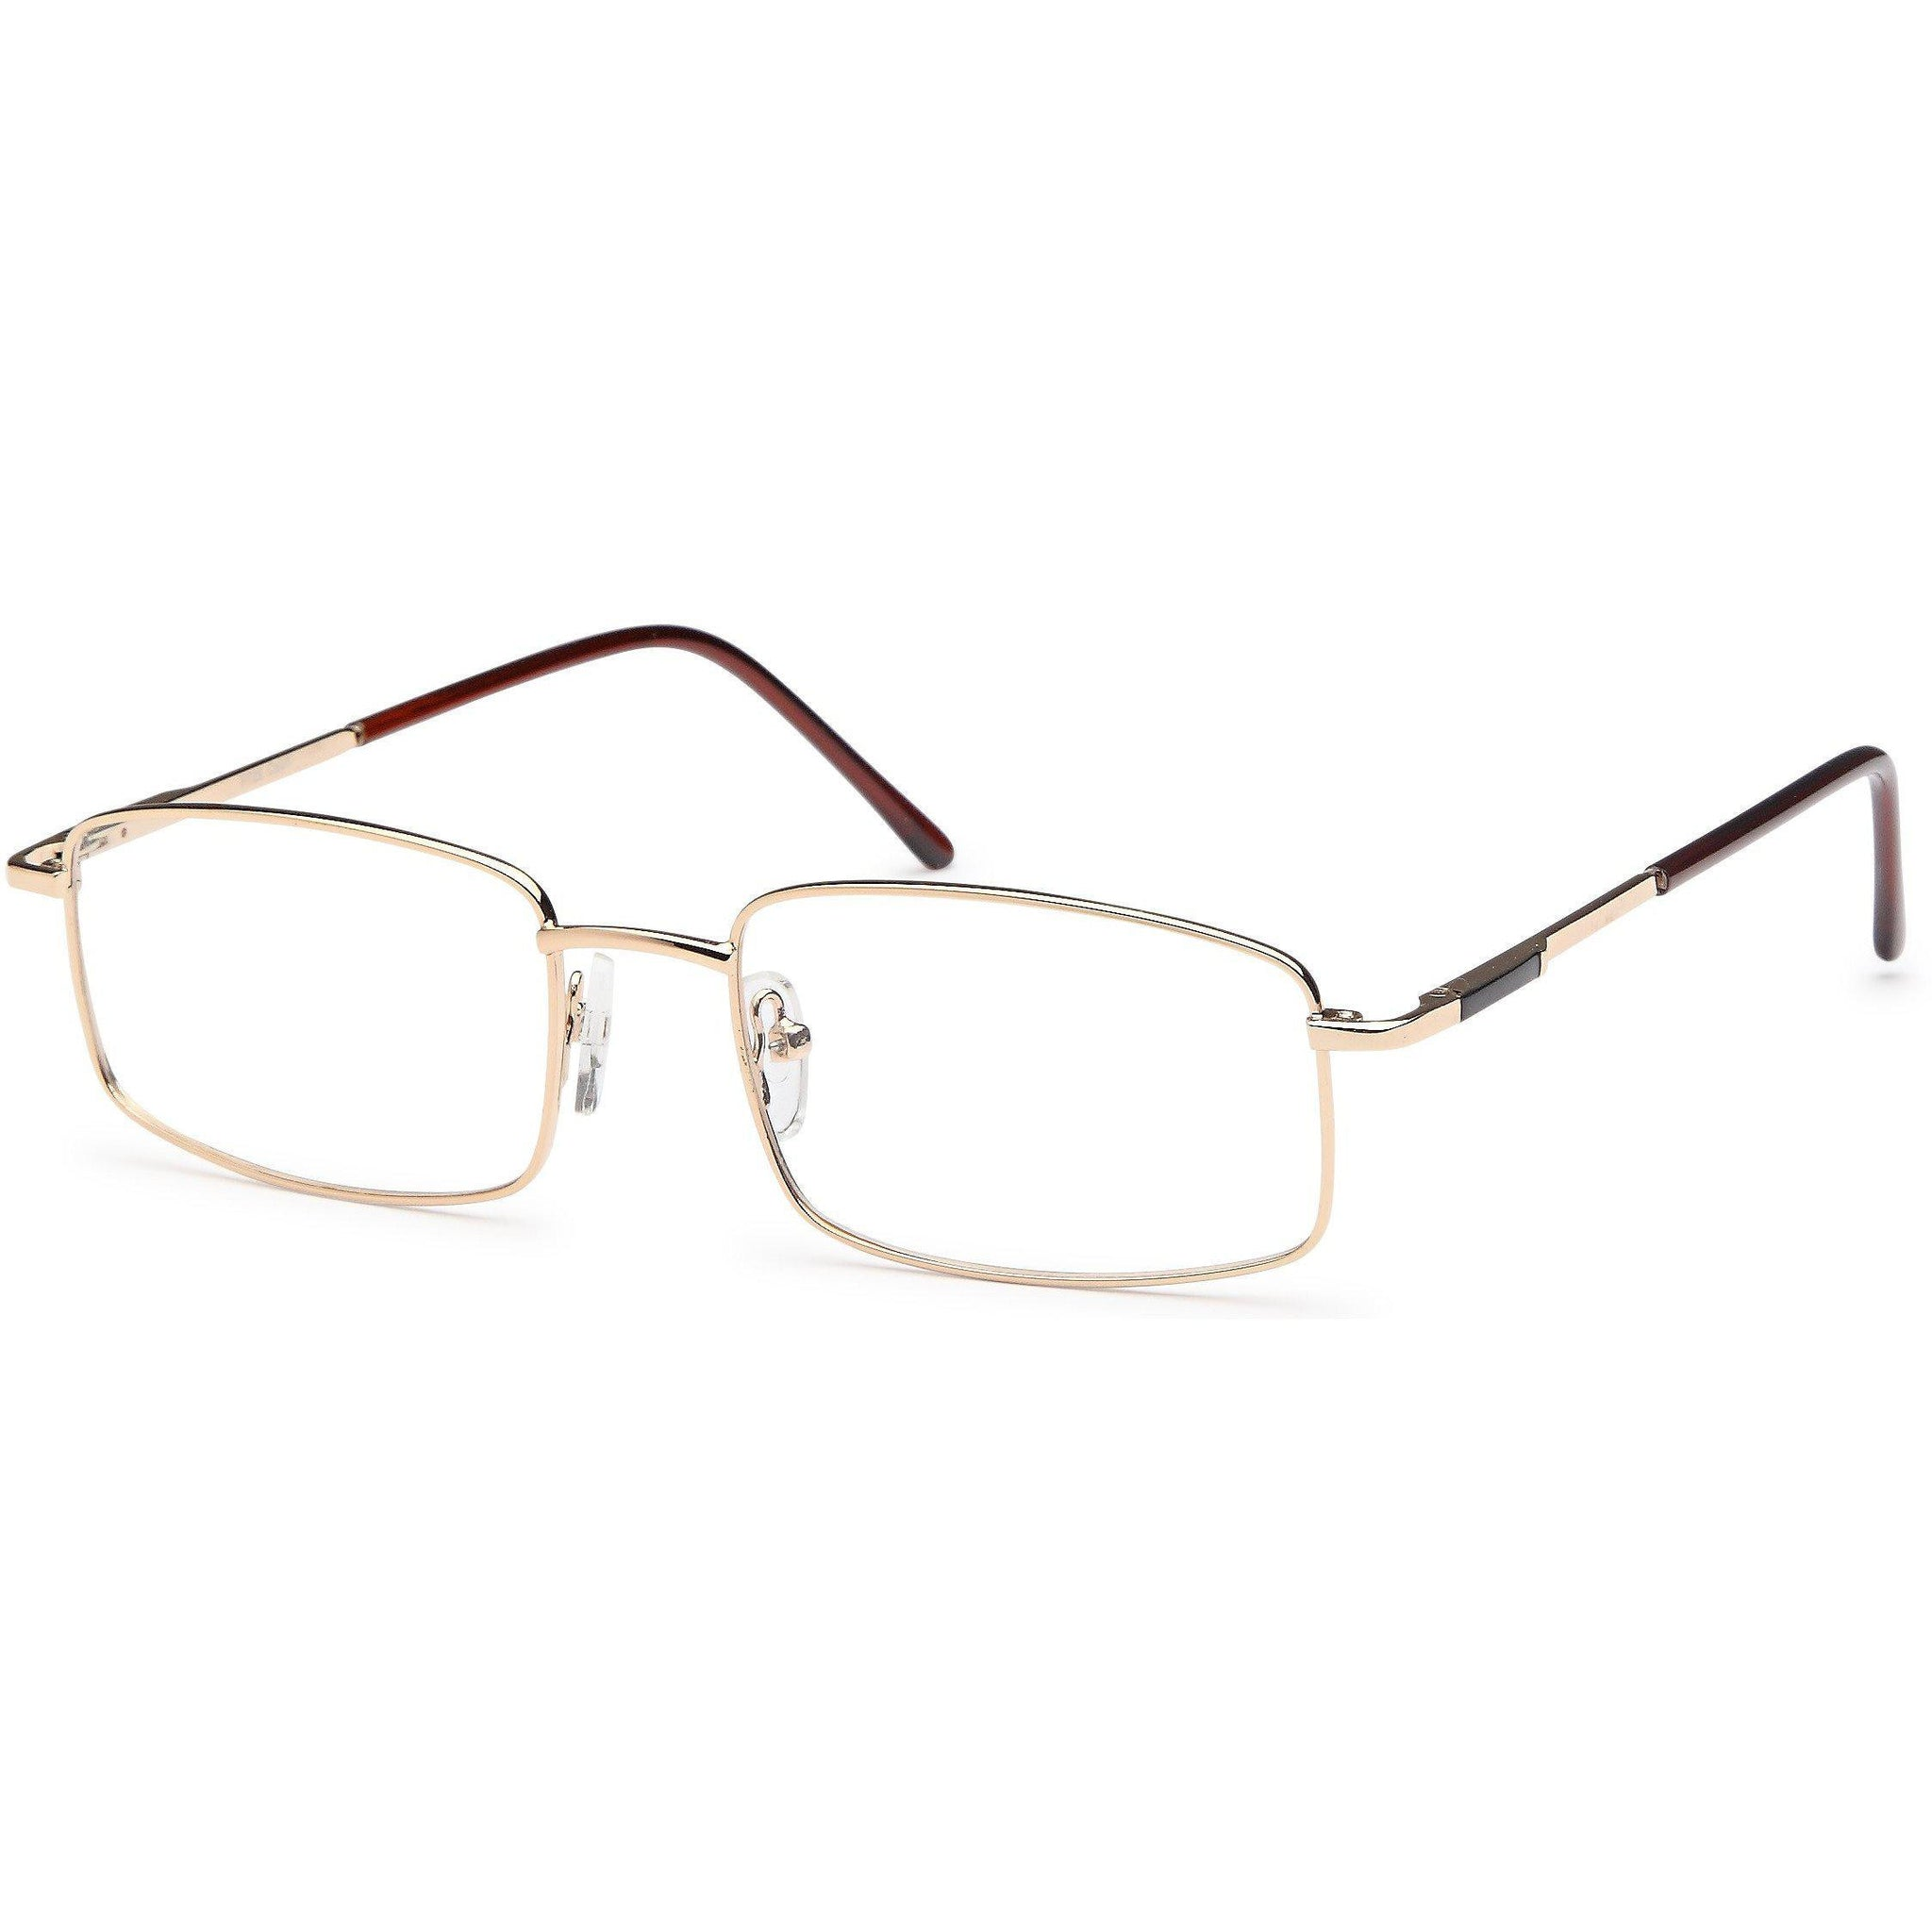 Appletree Prescription Glasses PT 69 Eyeglasses Frame